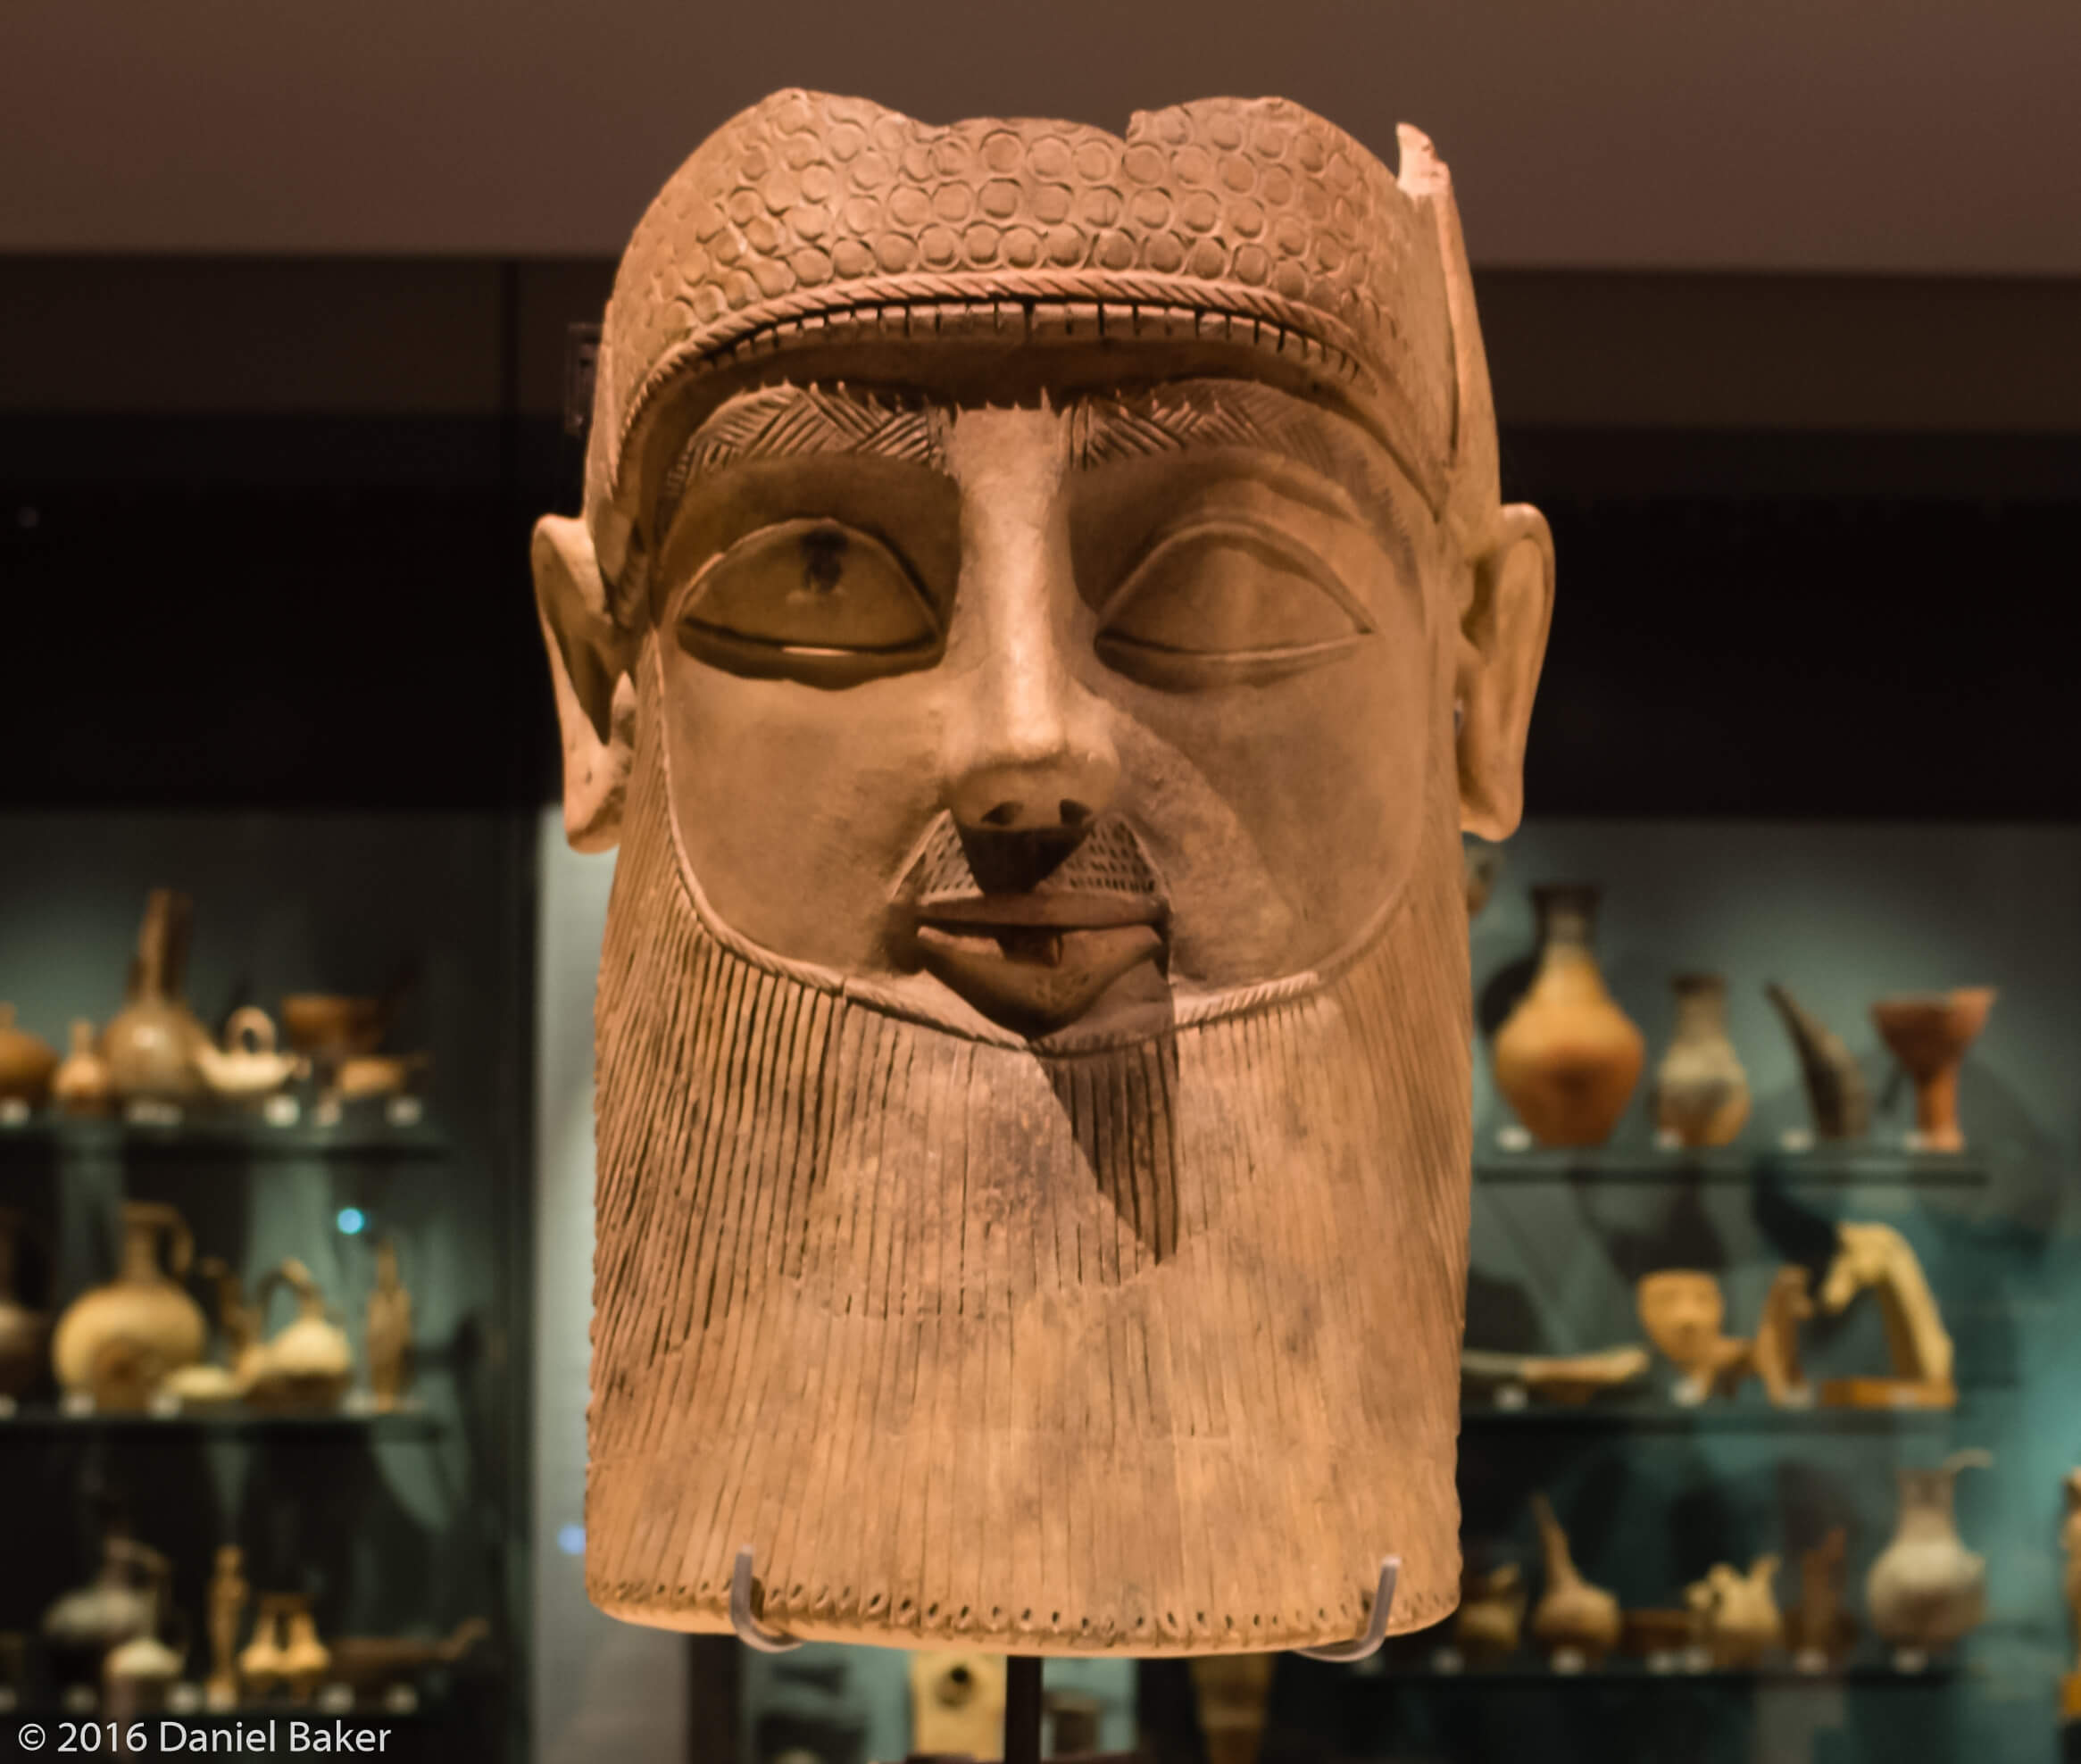 A Syrian style headstatue